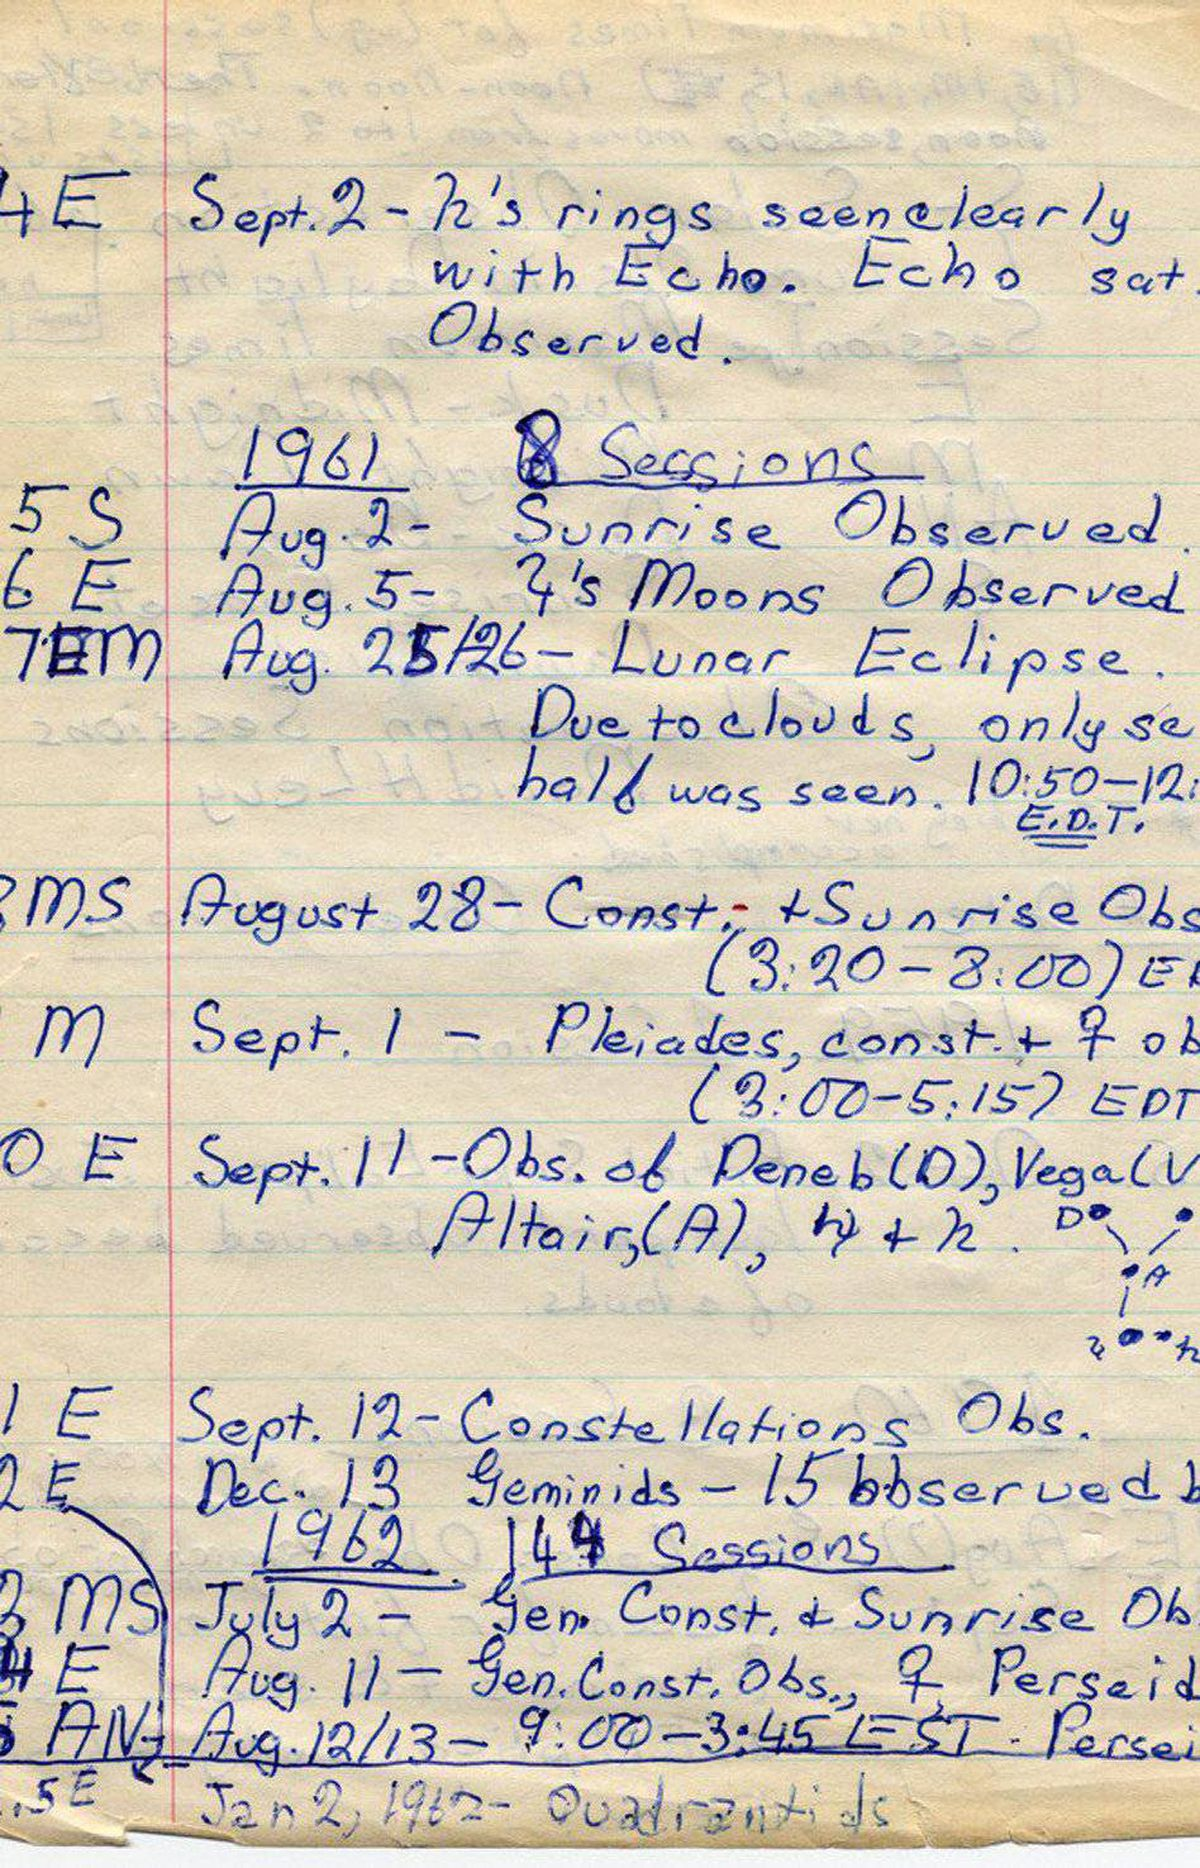 Logbook of: Levy, David H. - Volume , Page 4 *4E Sept.2 [1960]- Saturn's rings seen clearly with Echo. Echo sat. Observed. 1961 8 Sessions *5S Aug. 2- Sunrise Observed. 6E Aug. 5- Saturn's moons Observed. *7EM Aug. 25/26- Lunar eclipse. Due to clouds, only second half was seen. 10:50-12:42 E.D.T. *8MS August 28- Const. +Sunrise Obs. (3:20-8:00) EDT 9M Sept. 1 - Pleiades,const. + Venus Obs. 10E Sept.11 -Obs. of Deneb (D), Vega (V), Altair,(A), Jupiter + Saturn. 11E Sept.12 -Constellations Obs. *12SE Dec. 13 Geminids - 15 observed by me 1962 144 Sessions 13MS July 2 - Gen. Cosnt. + Sunrise Obs. 14E Aug. 11 - Gen. Cosnt. Obs., Venus, Perseids 15AN Aug.12/13 - 9:00-3:45 EST. Perseids Jan 2, 1962 - Quadrantids